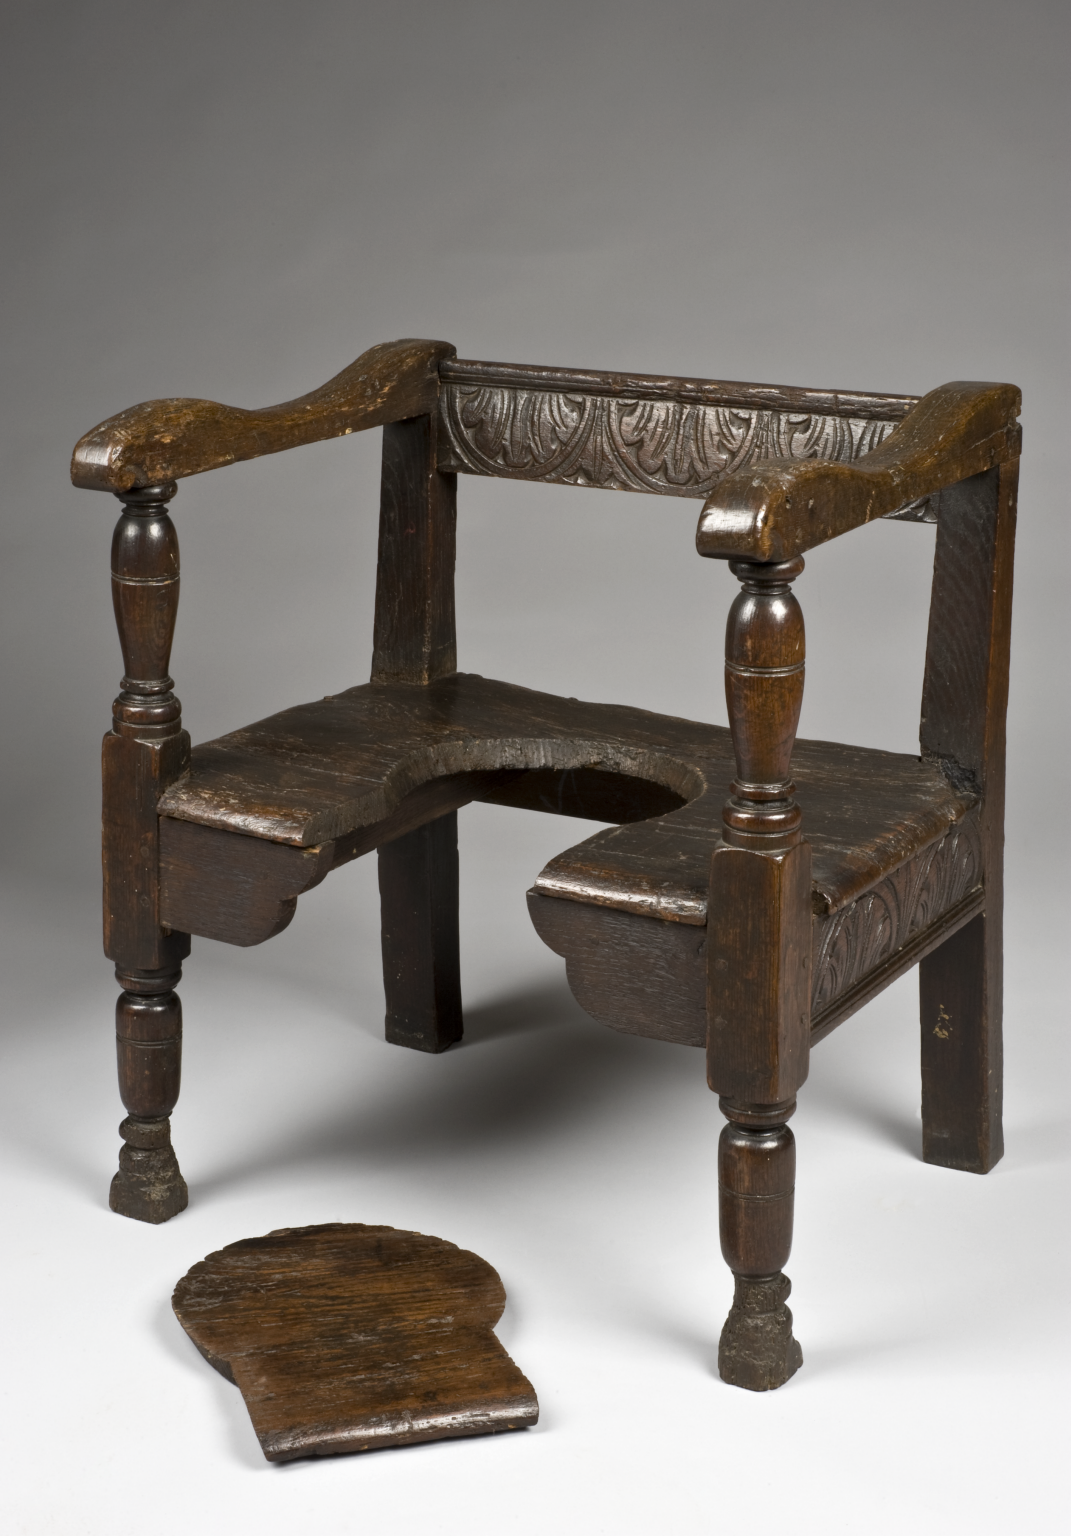 Antique birthing chair - Explore Birthing Stool Medical Oddities And More